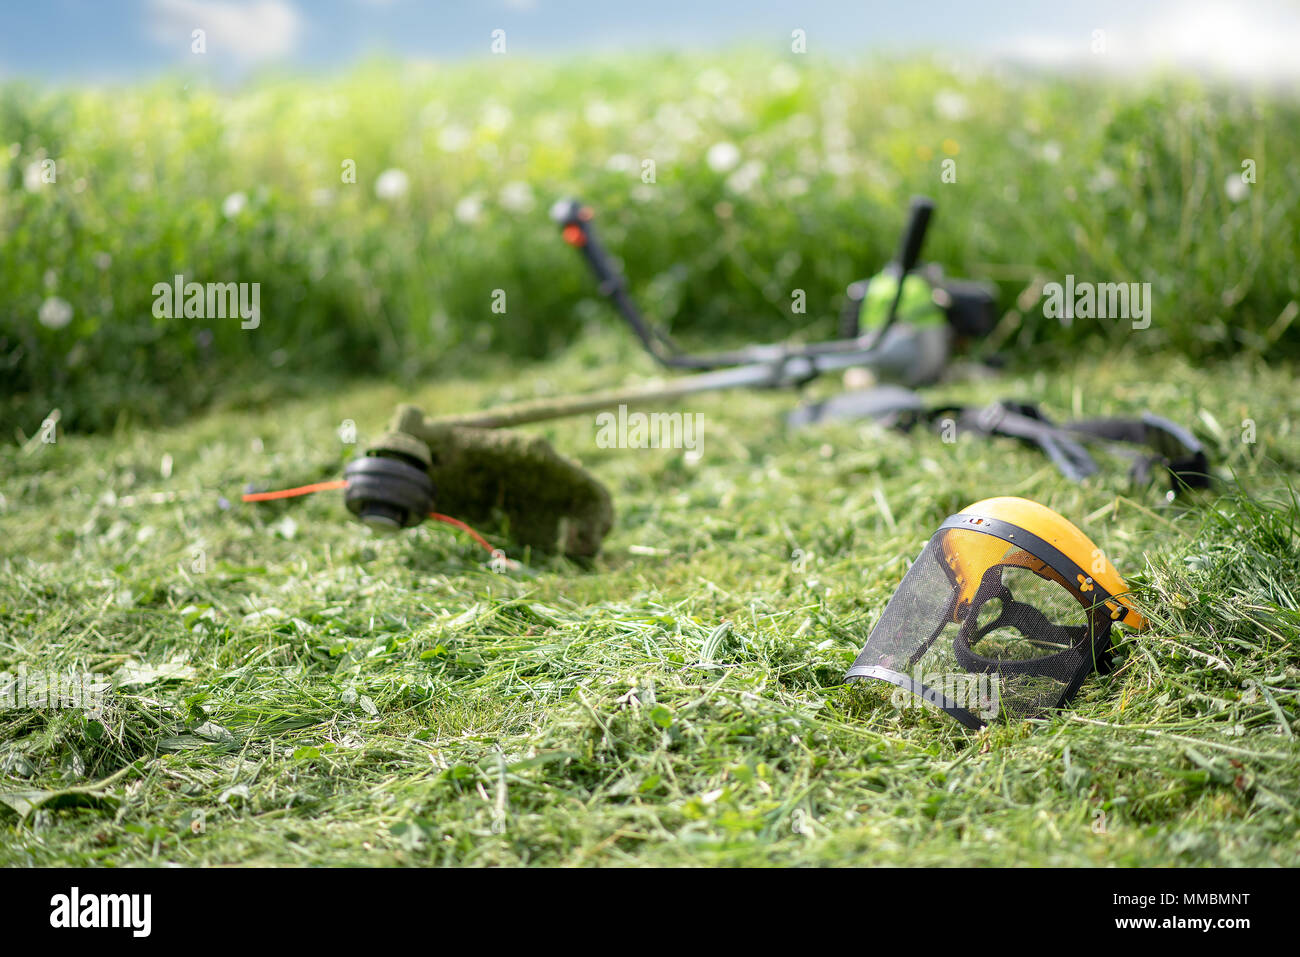 String trimmer and protective face mask on mown grass, growing grass and the blue sky on the background - Stock Image